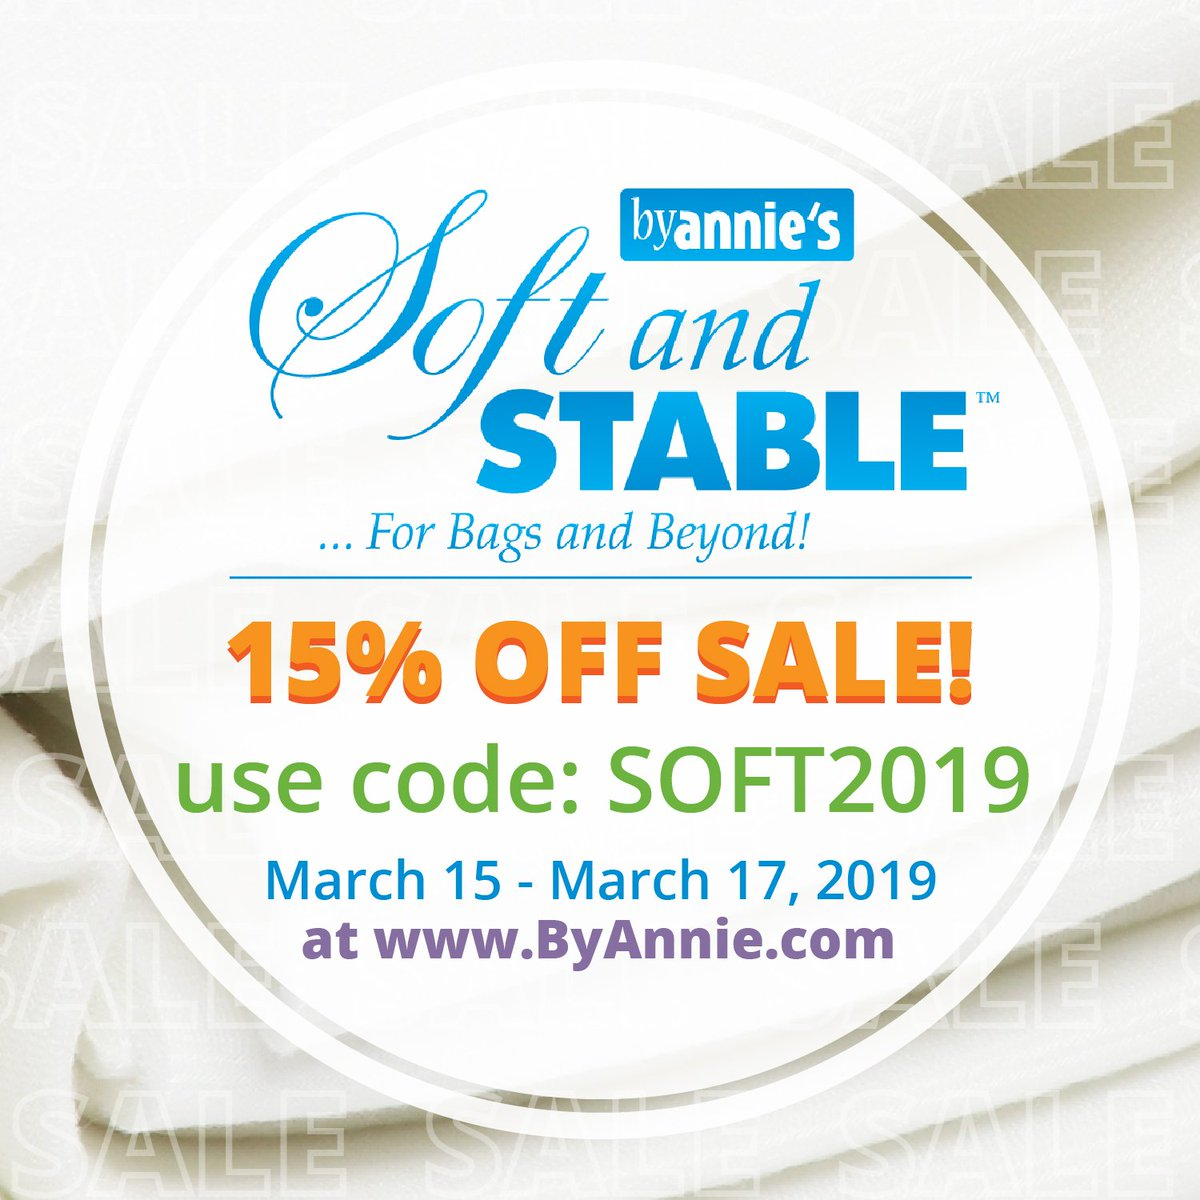 #SoftAndStable SALE at http://www.byannie.com! Get 15% OFF when you use the code SOFT2019 from today (March 15th, 2019) until Sunday (March 17th, 2019). Happy stitching, everyone!  #byanniesale #patternsbyannie #sewingsale #happyquiltingday #internationalquiltingday #diylife